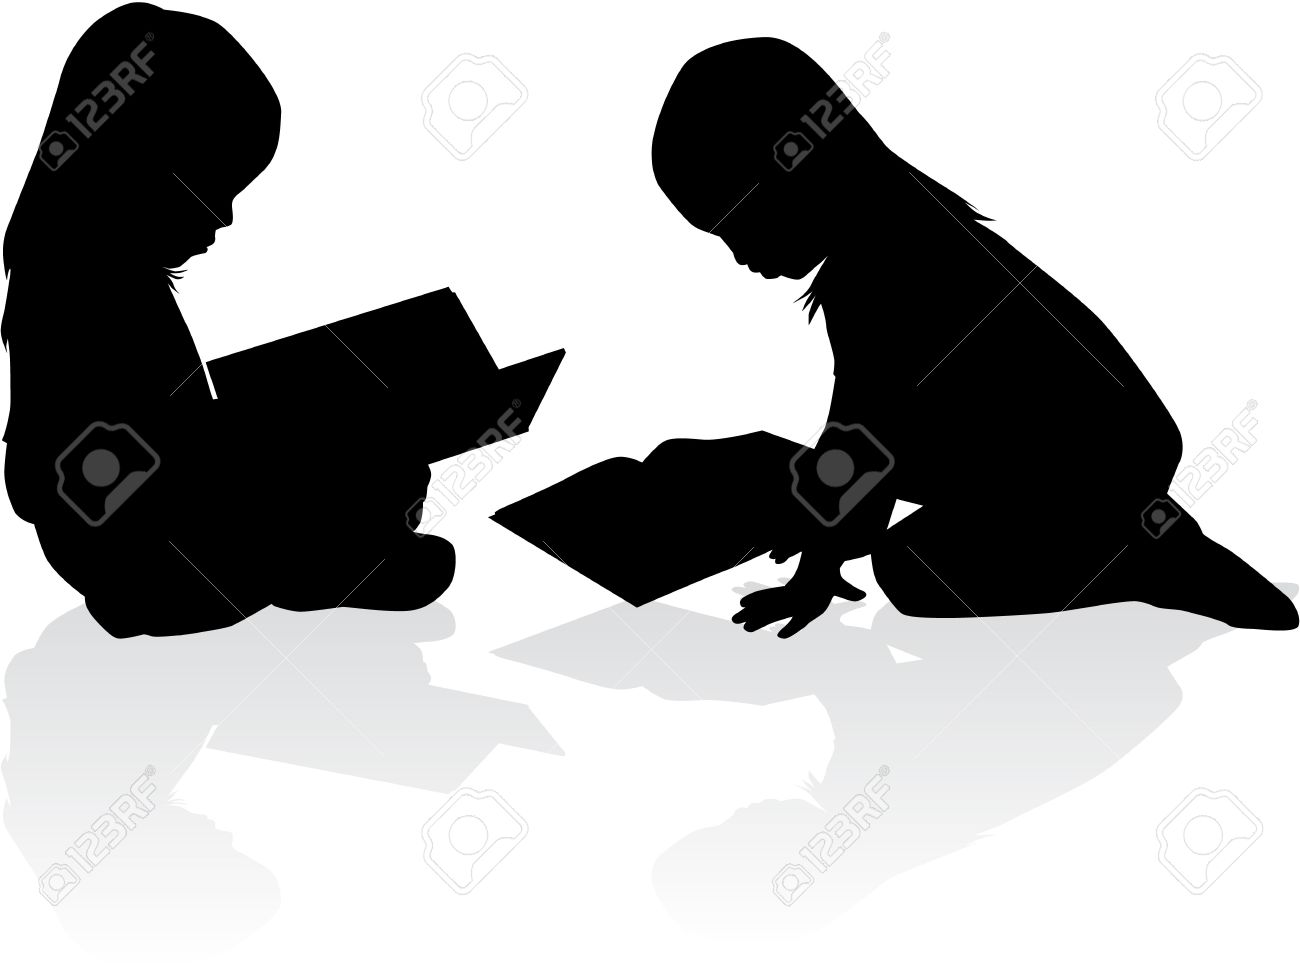 Silhouette of a girl reading a book. - 37042528